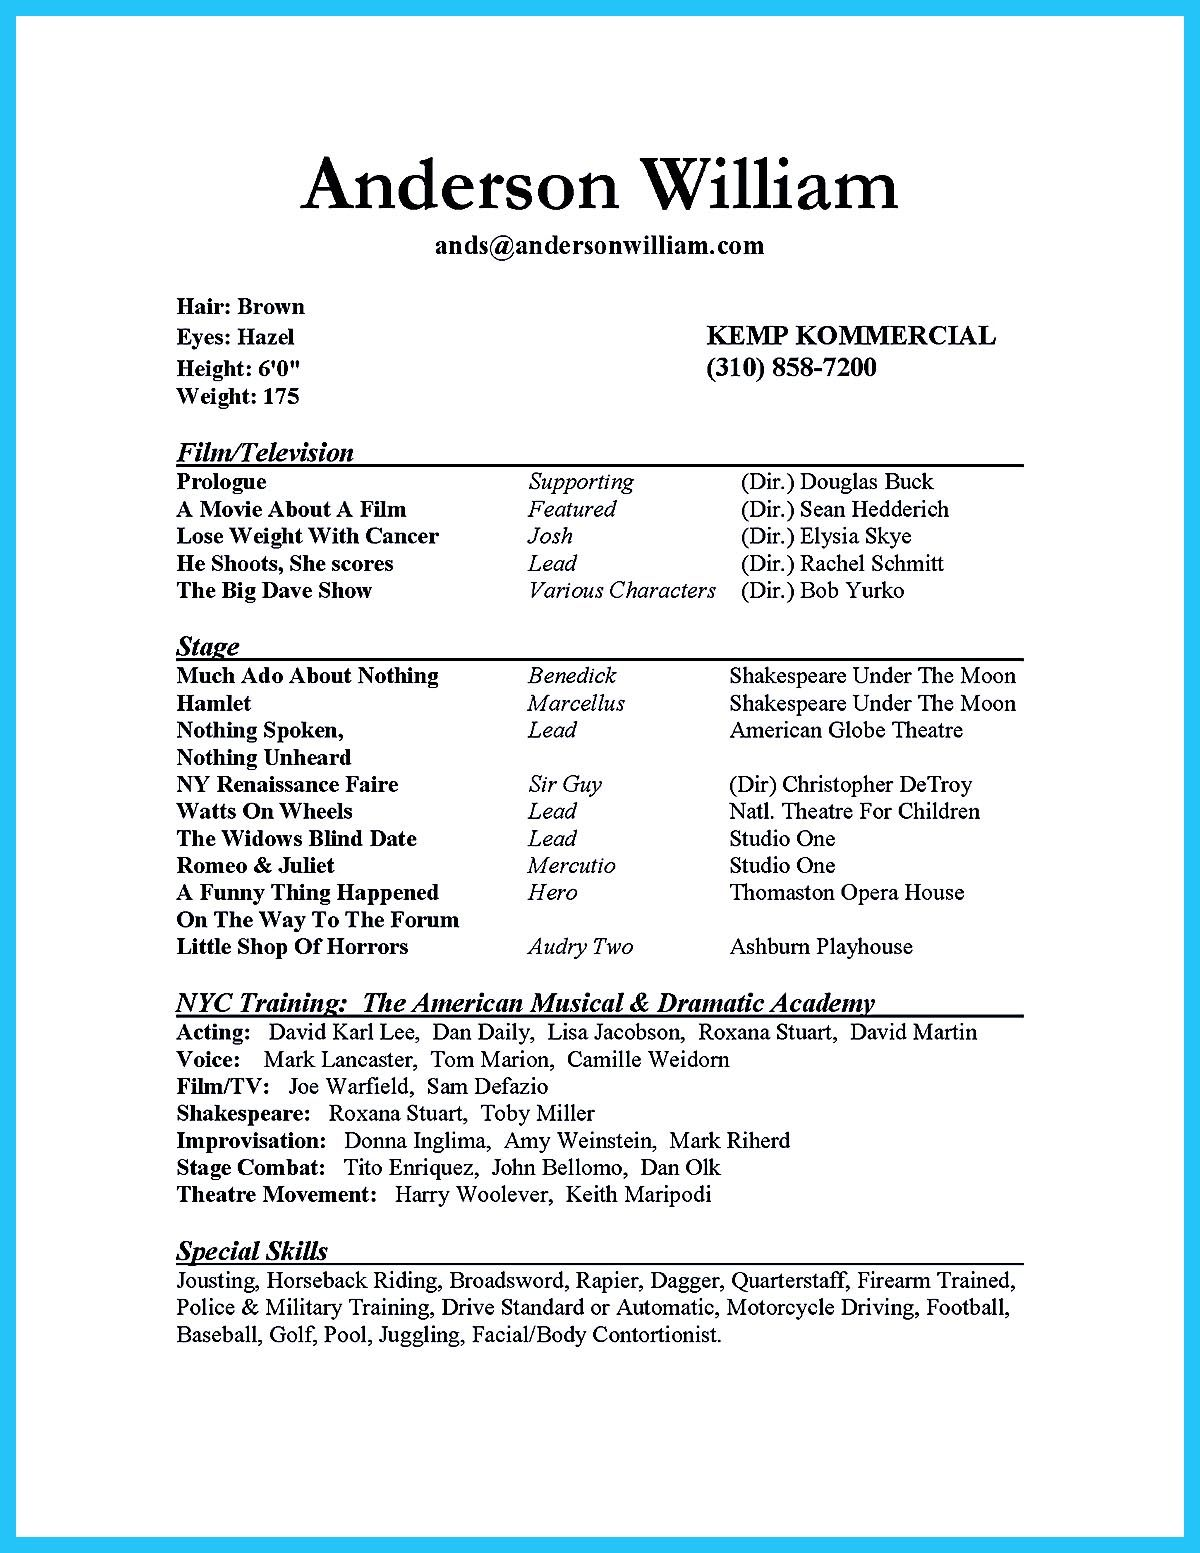 Actor Resume Format Glamorous Actor Resume Sample Presents How You Will Make Your Professional Or .